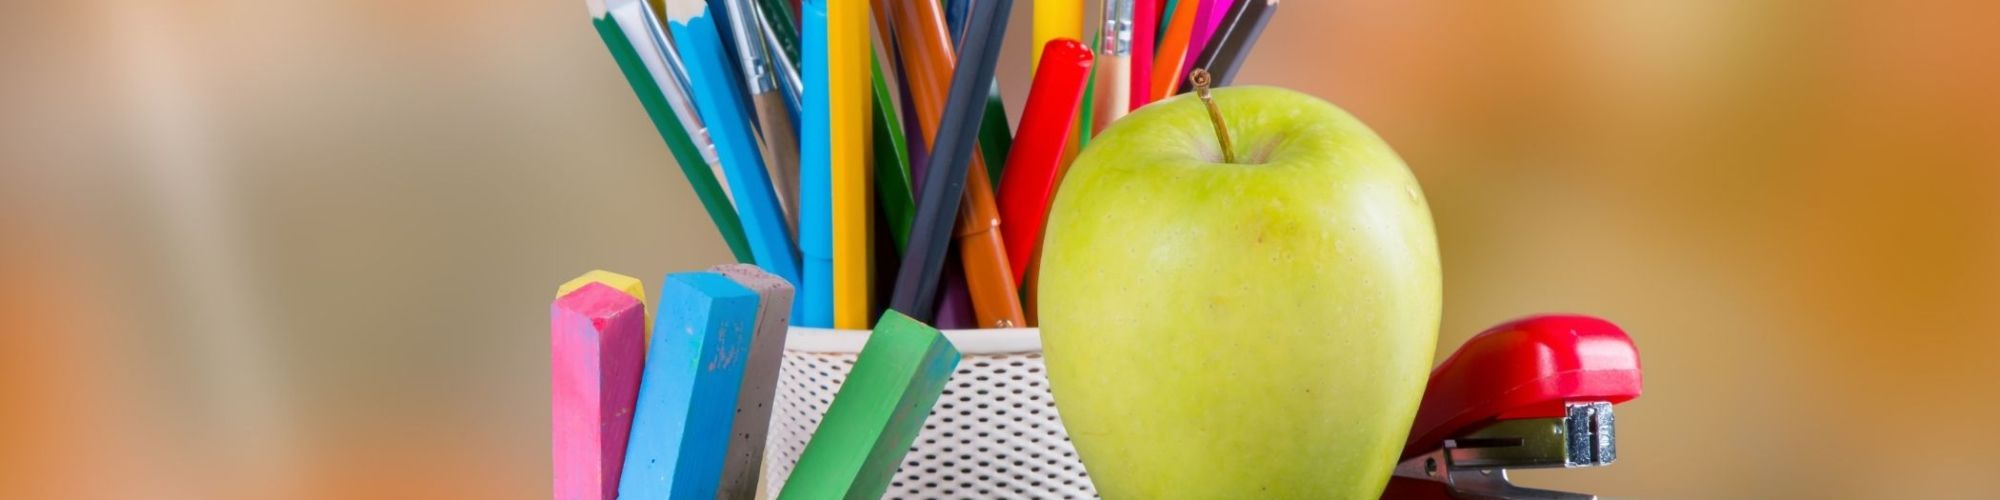 Pencils with apple